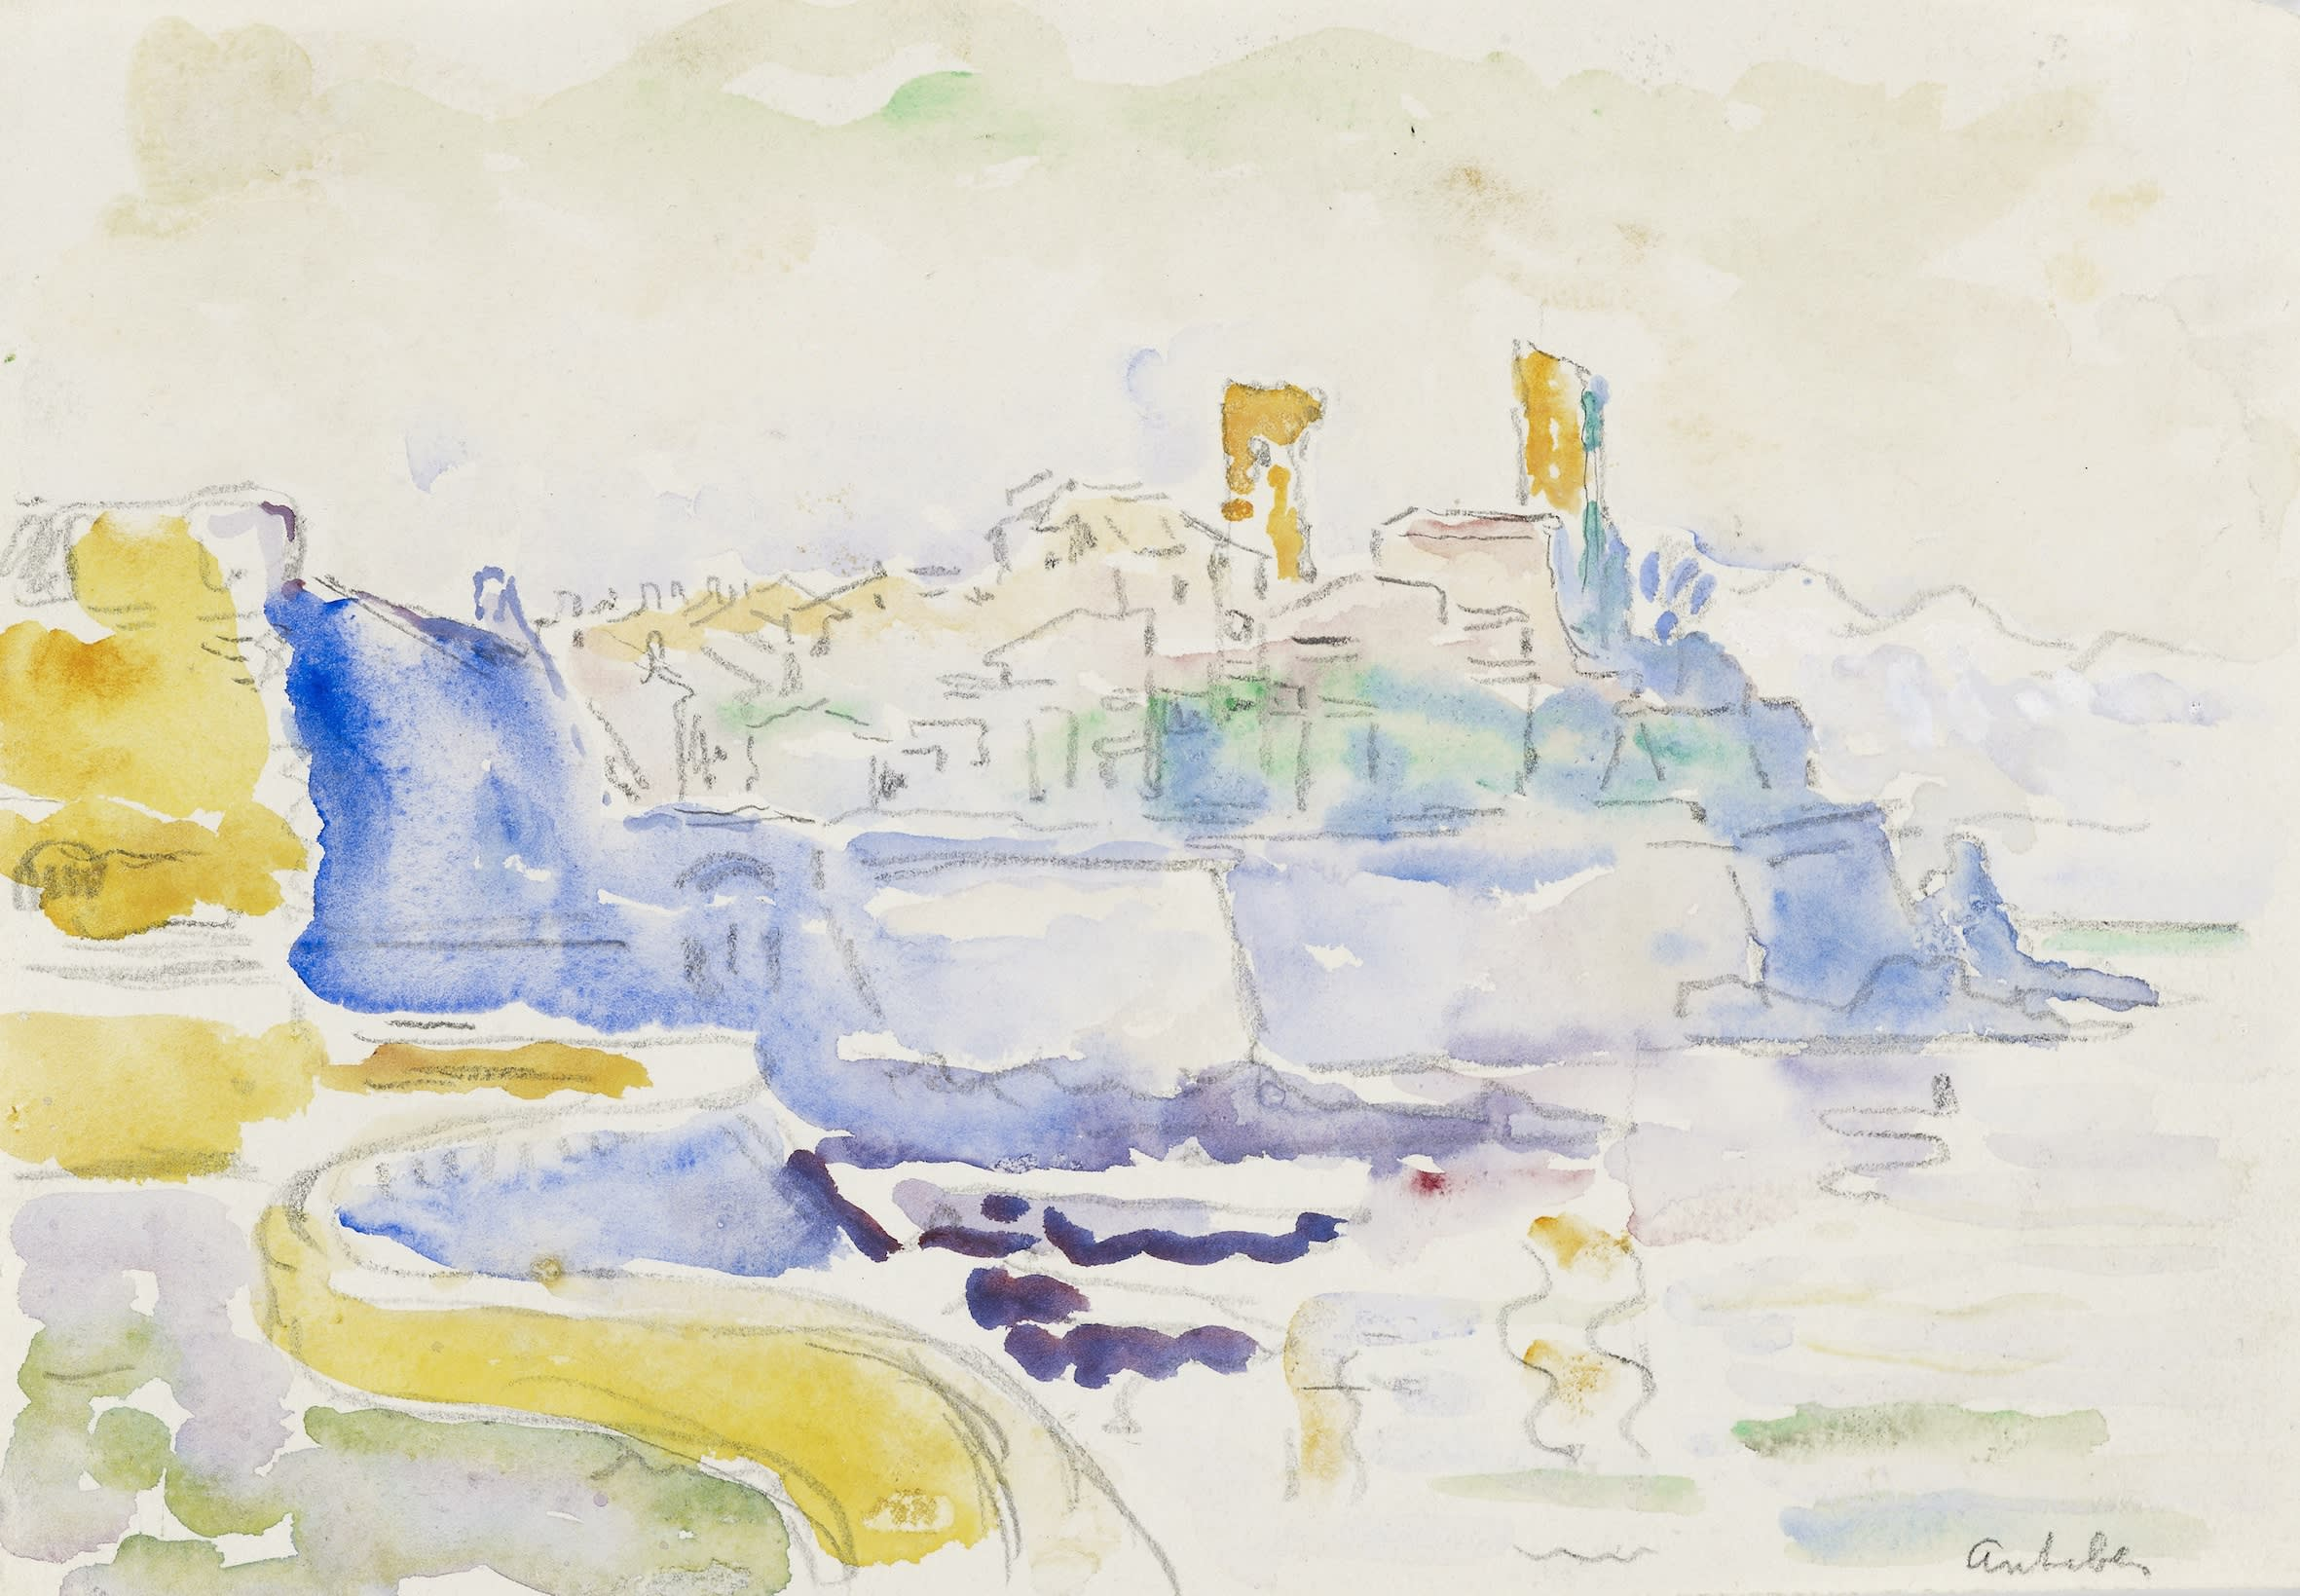 <span class=&#34;link fancybox-details-link&#34;><a href=&#34;/artists/75-paul-signac/works/9422-paul-signac-vue-d-antibes-1918-1919/&#34;>View Detail Page</a></span><div class=&#34;artist&#34;><span class=&#34;artist&#34;><strong>Paul Signac</strong></span></div><div class=&#34;title&#34;><em>Vue d'Antibes</em>, 1918-1919</div><div class=&#34;signed_and_dated&#34;>Located lower right 'antibes'</div><div class=&#34;medium&#34;>Watercolour and pencil on paper</div><div class=&#34;dimensions&#34;>17.5 x 24.4 cm<br /> 6 7/8 x 8 ¼ inches<br /> </div>